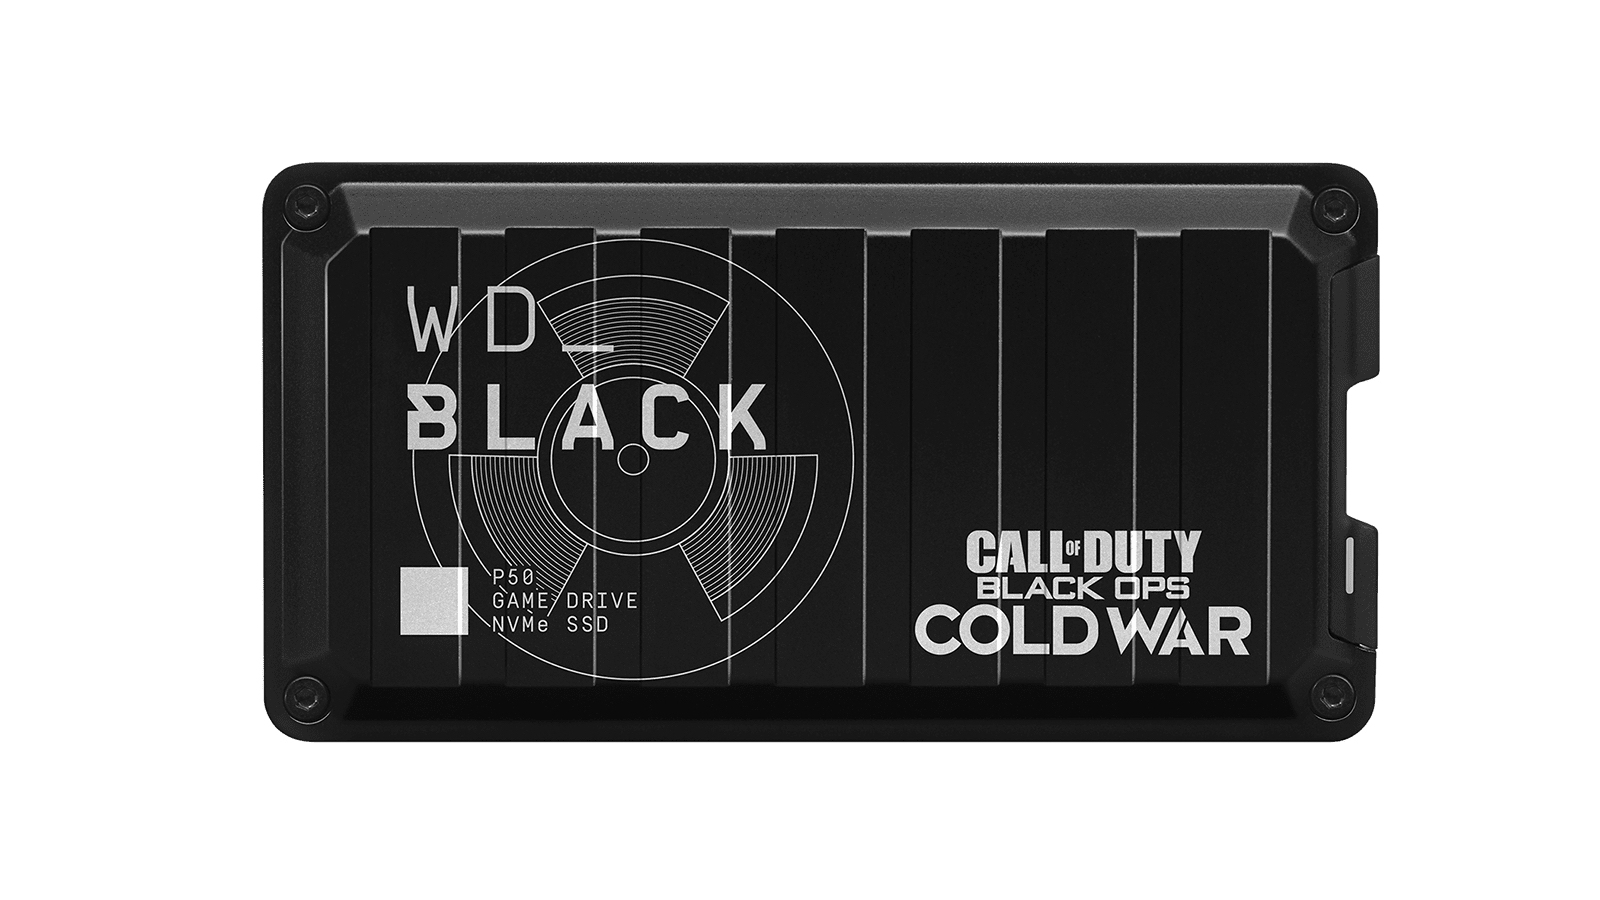 Western Digital Call of Duty: Black Ops SSD can reach speeds up to 2000 MB/s